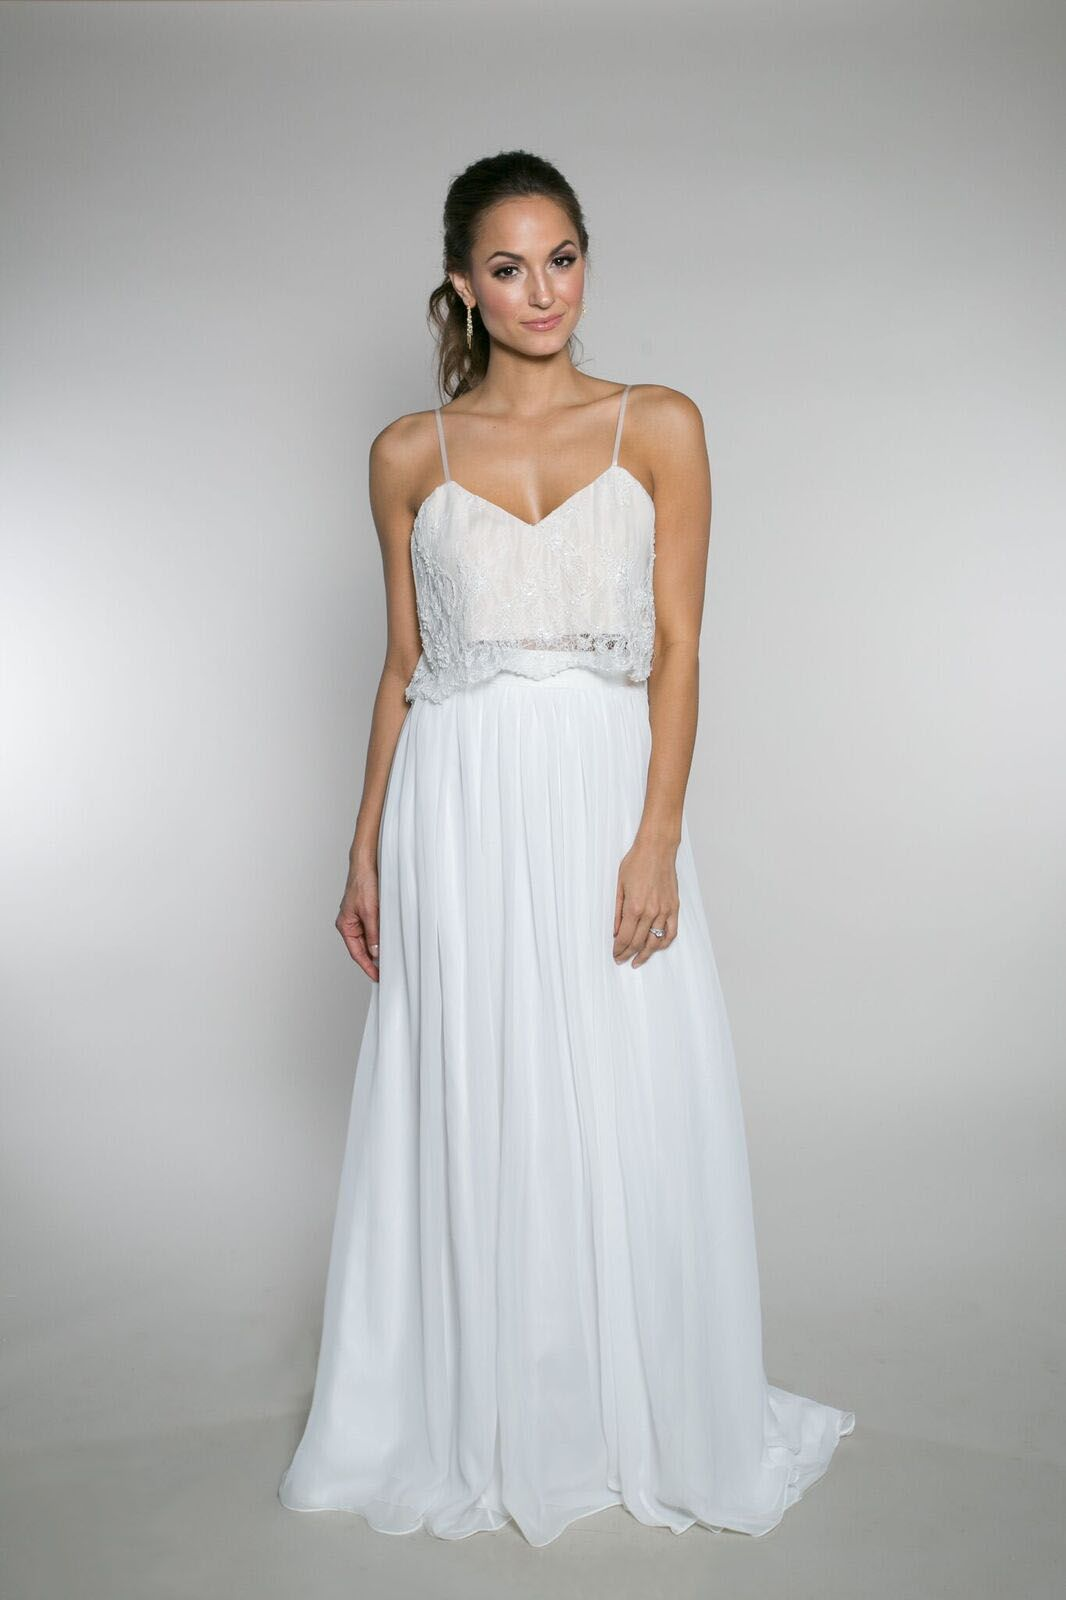 Lola Skirt Tank Top The Tank Top Is Another Great Bridal Separate It Was Created With T Wedding Dress Styles Custom Wedding Dress Designer Wedding Dresses